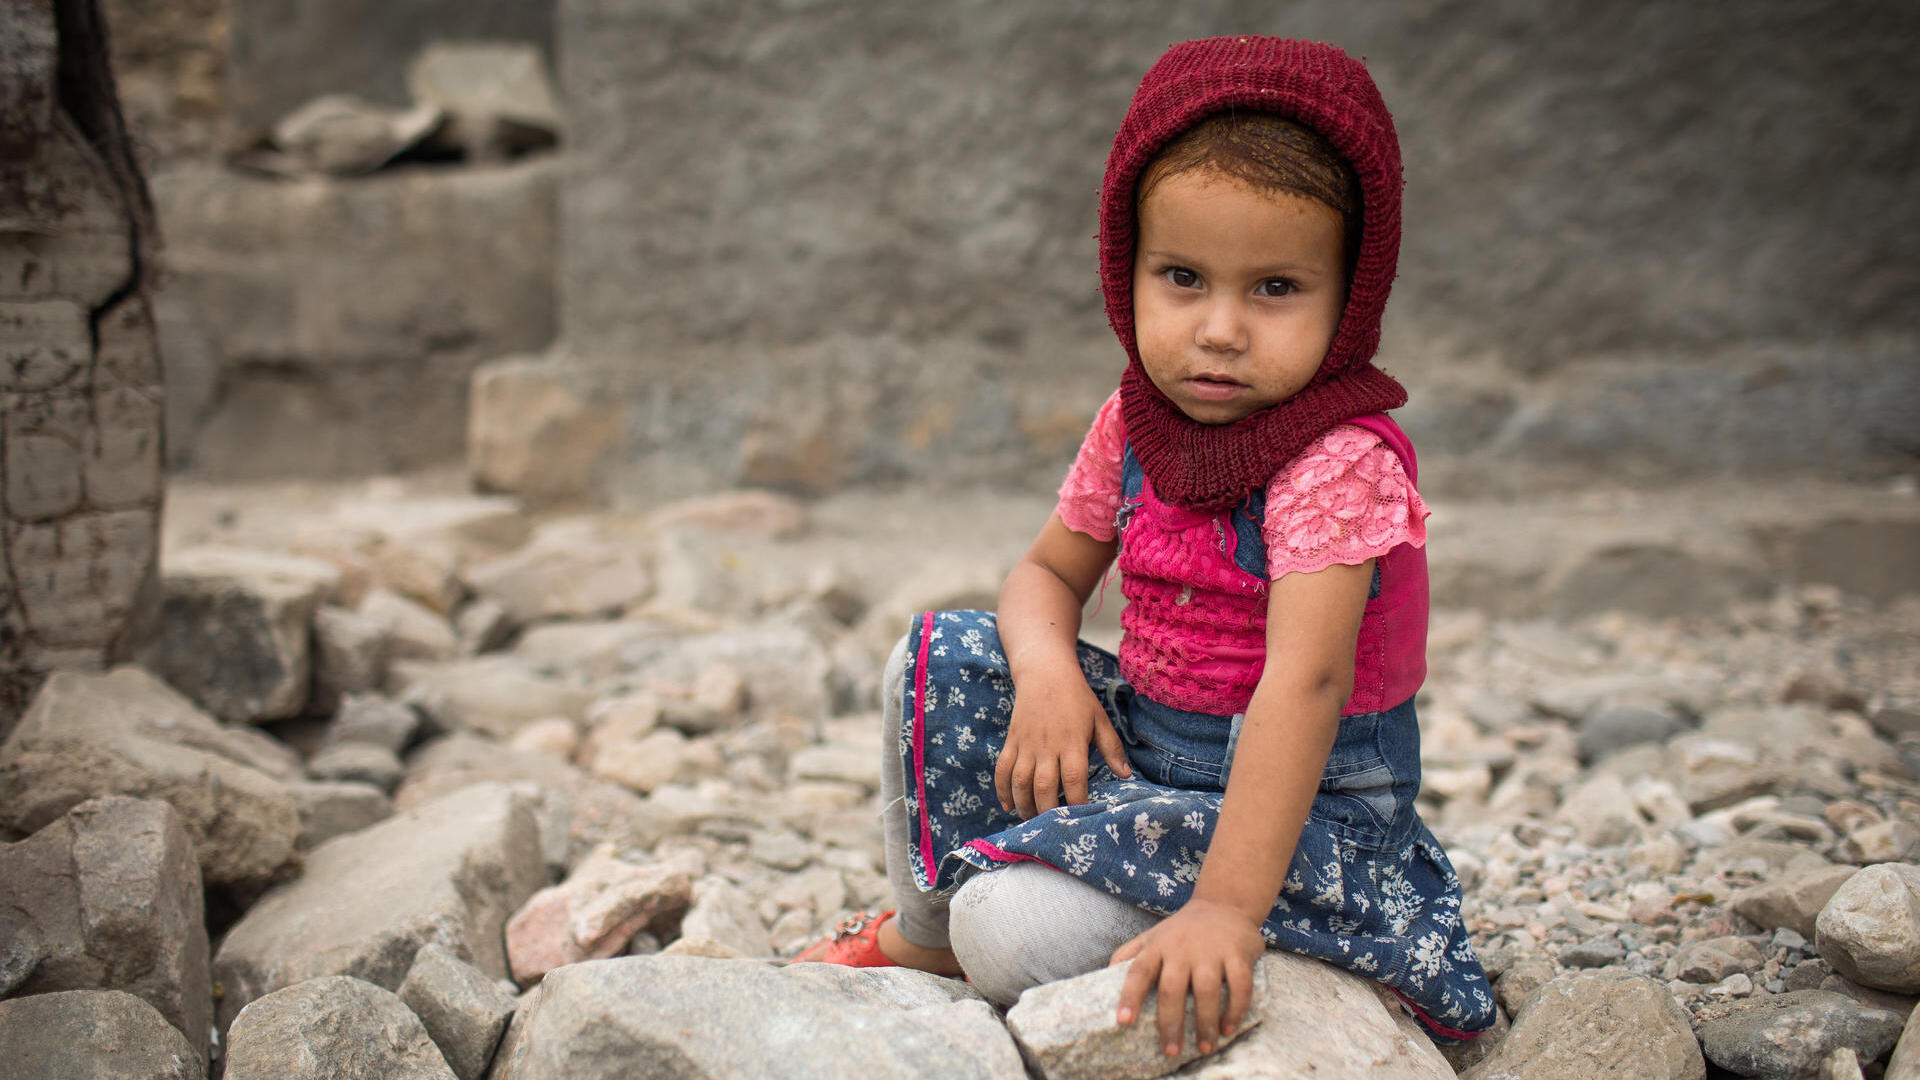 Small girl sits among rubble looking at the camera.